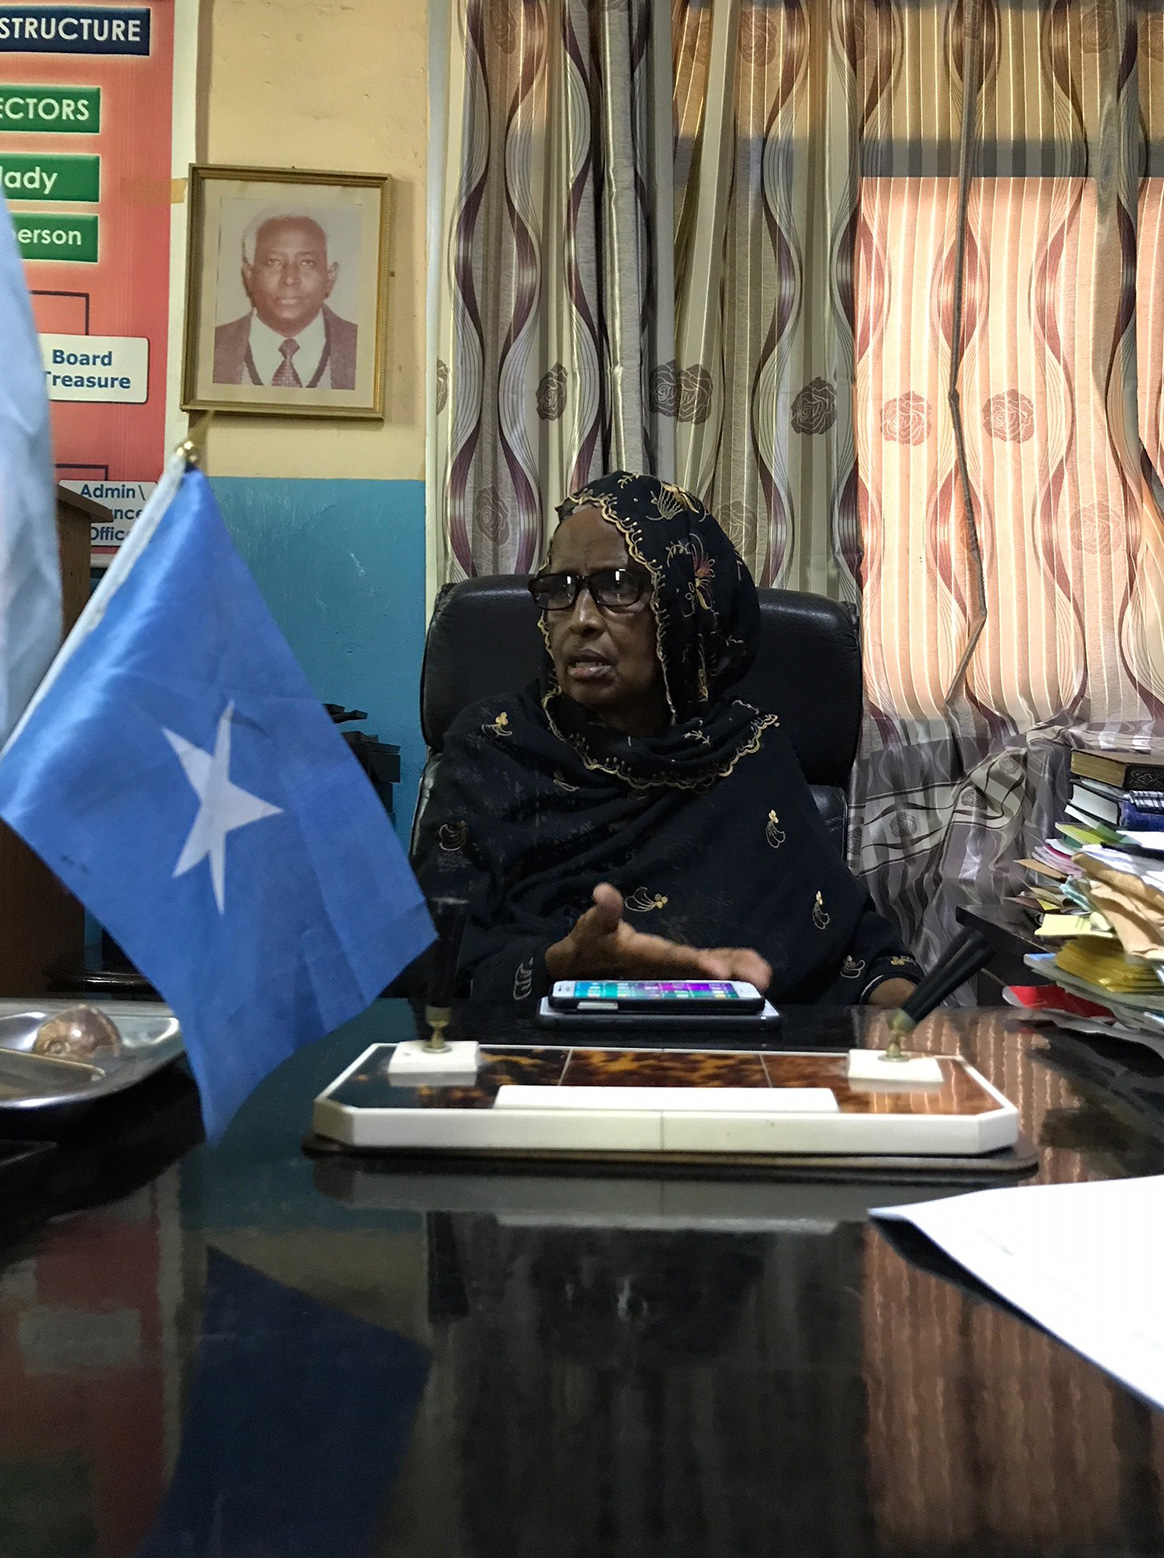 Mama Ayesha, a leader of eradication efforts in her district, considers what drives her work. © WHO Somalia